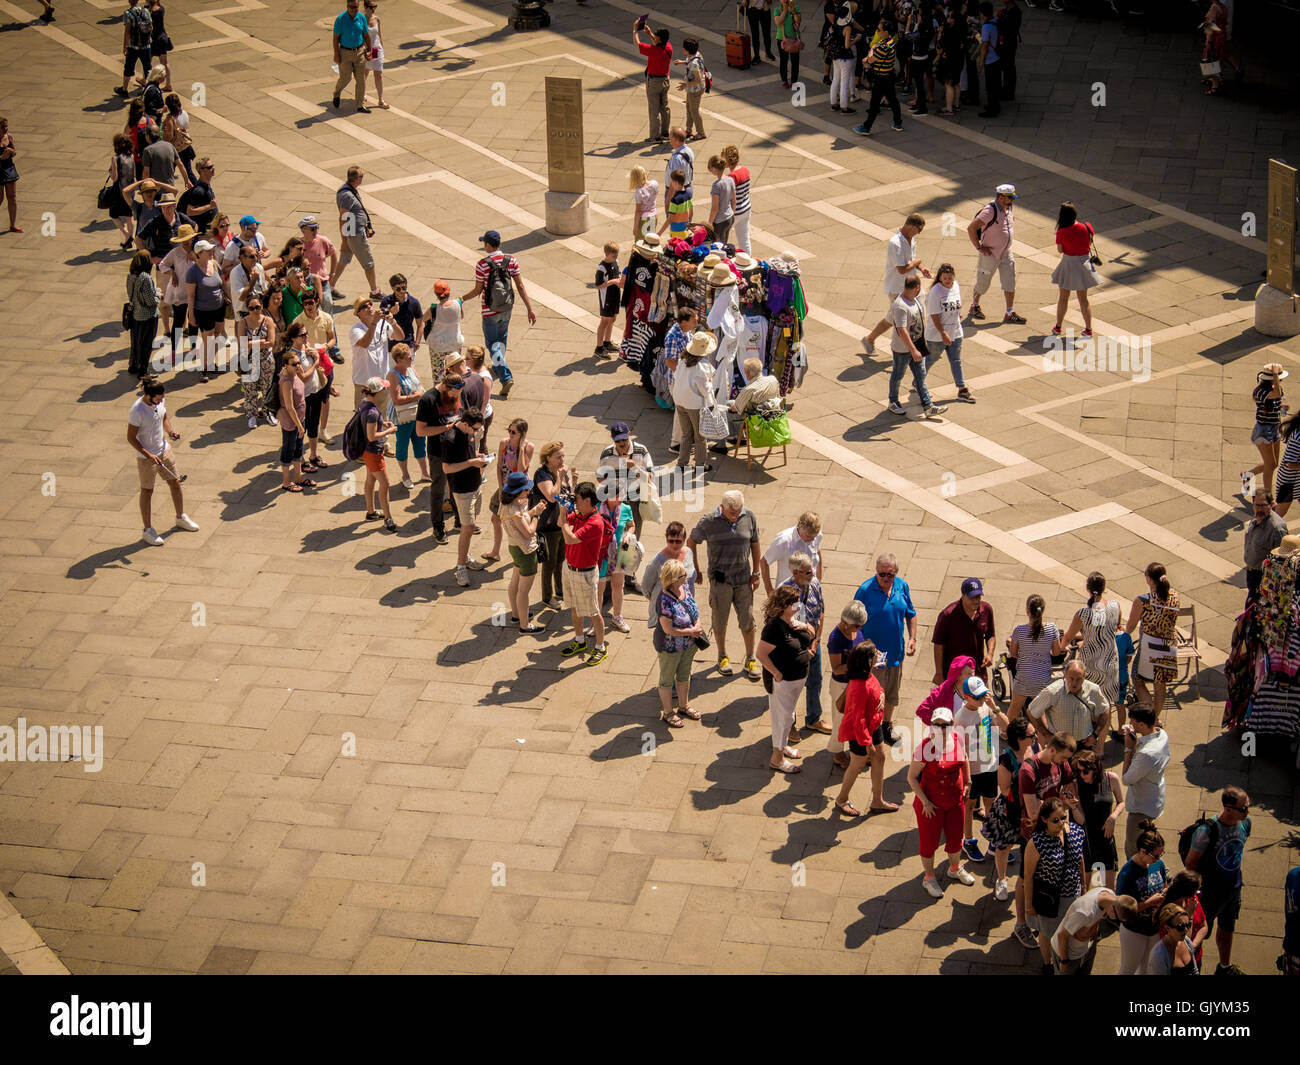 Tourist queuing in line at Piazzetta San Marco, Venice Italy. Stock Photo